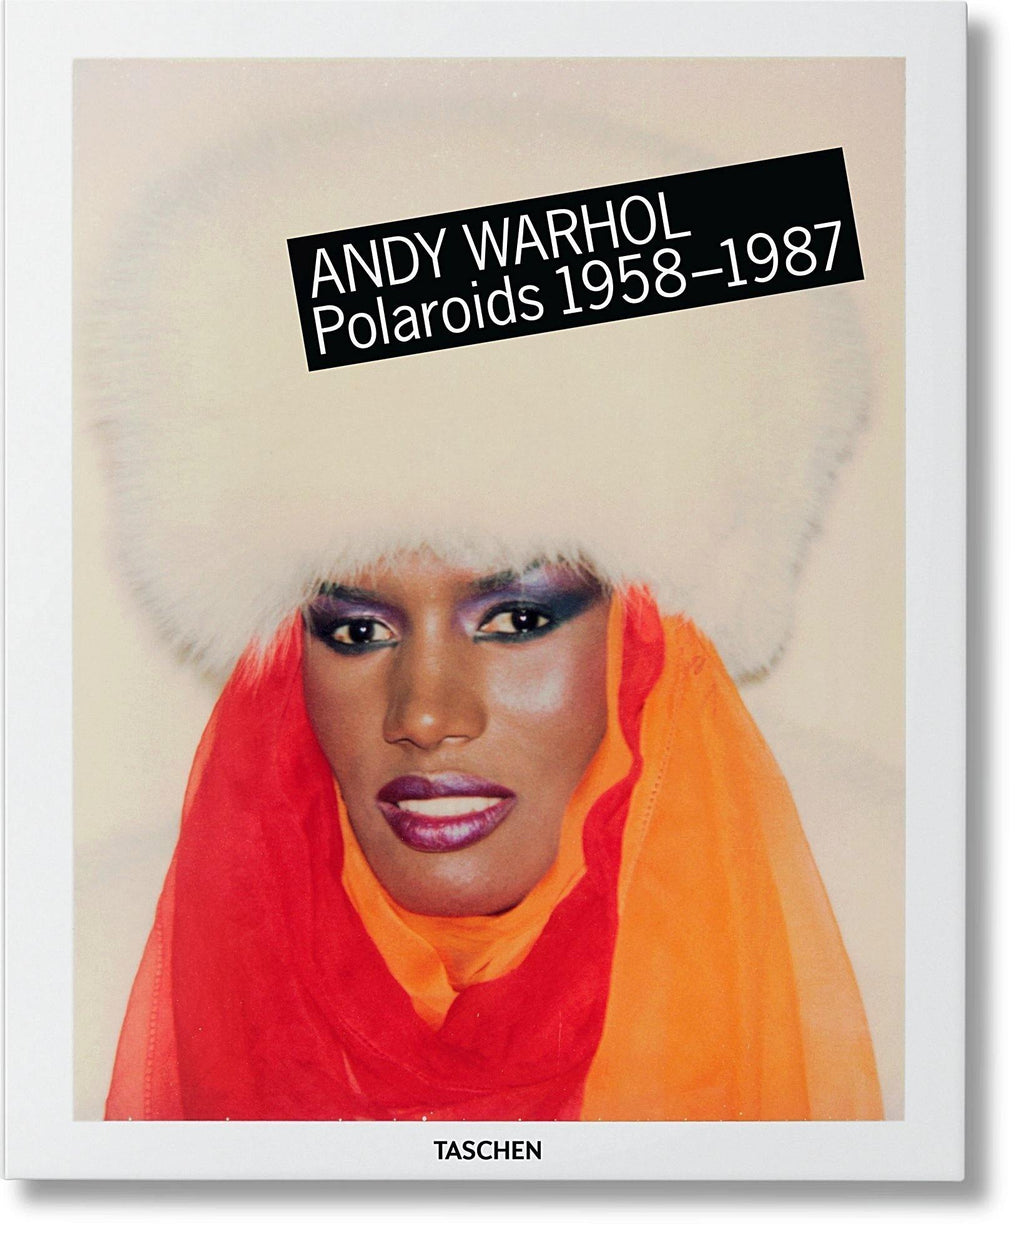 Andy Warhol, Polaroid, book, Warhol, The Factory, Photo, Fine art, photography, home decor, wall decor, interior design, La Maison Rebelle, gift shop, Los Angeles, fine art photography, signed, limited edition, art gallery, gallery, new york city